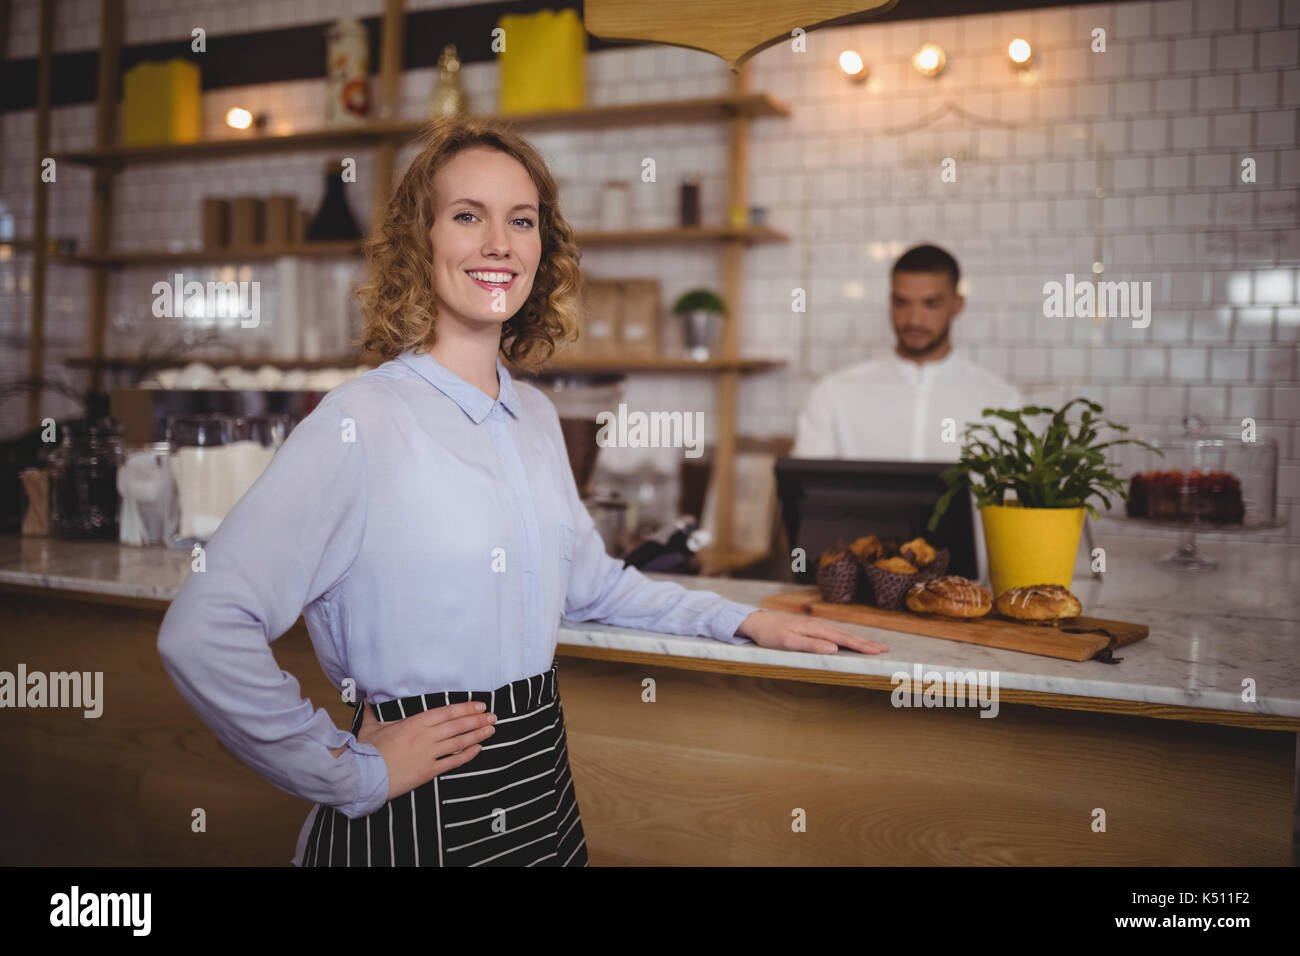 Portrait of smiling waitress standing with hand on hip by counter at coffee shop - Stock Image